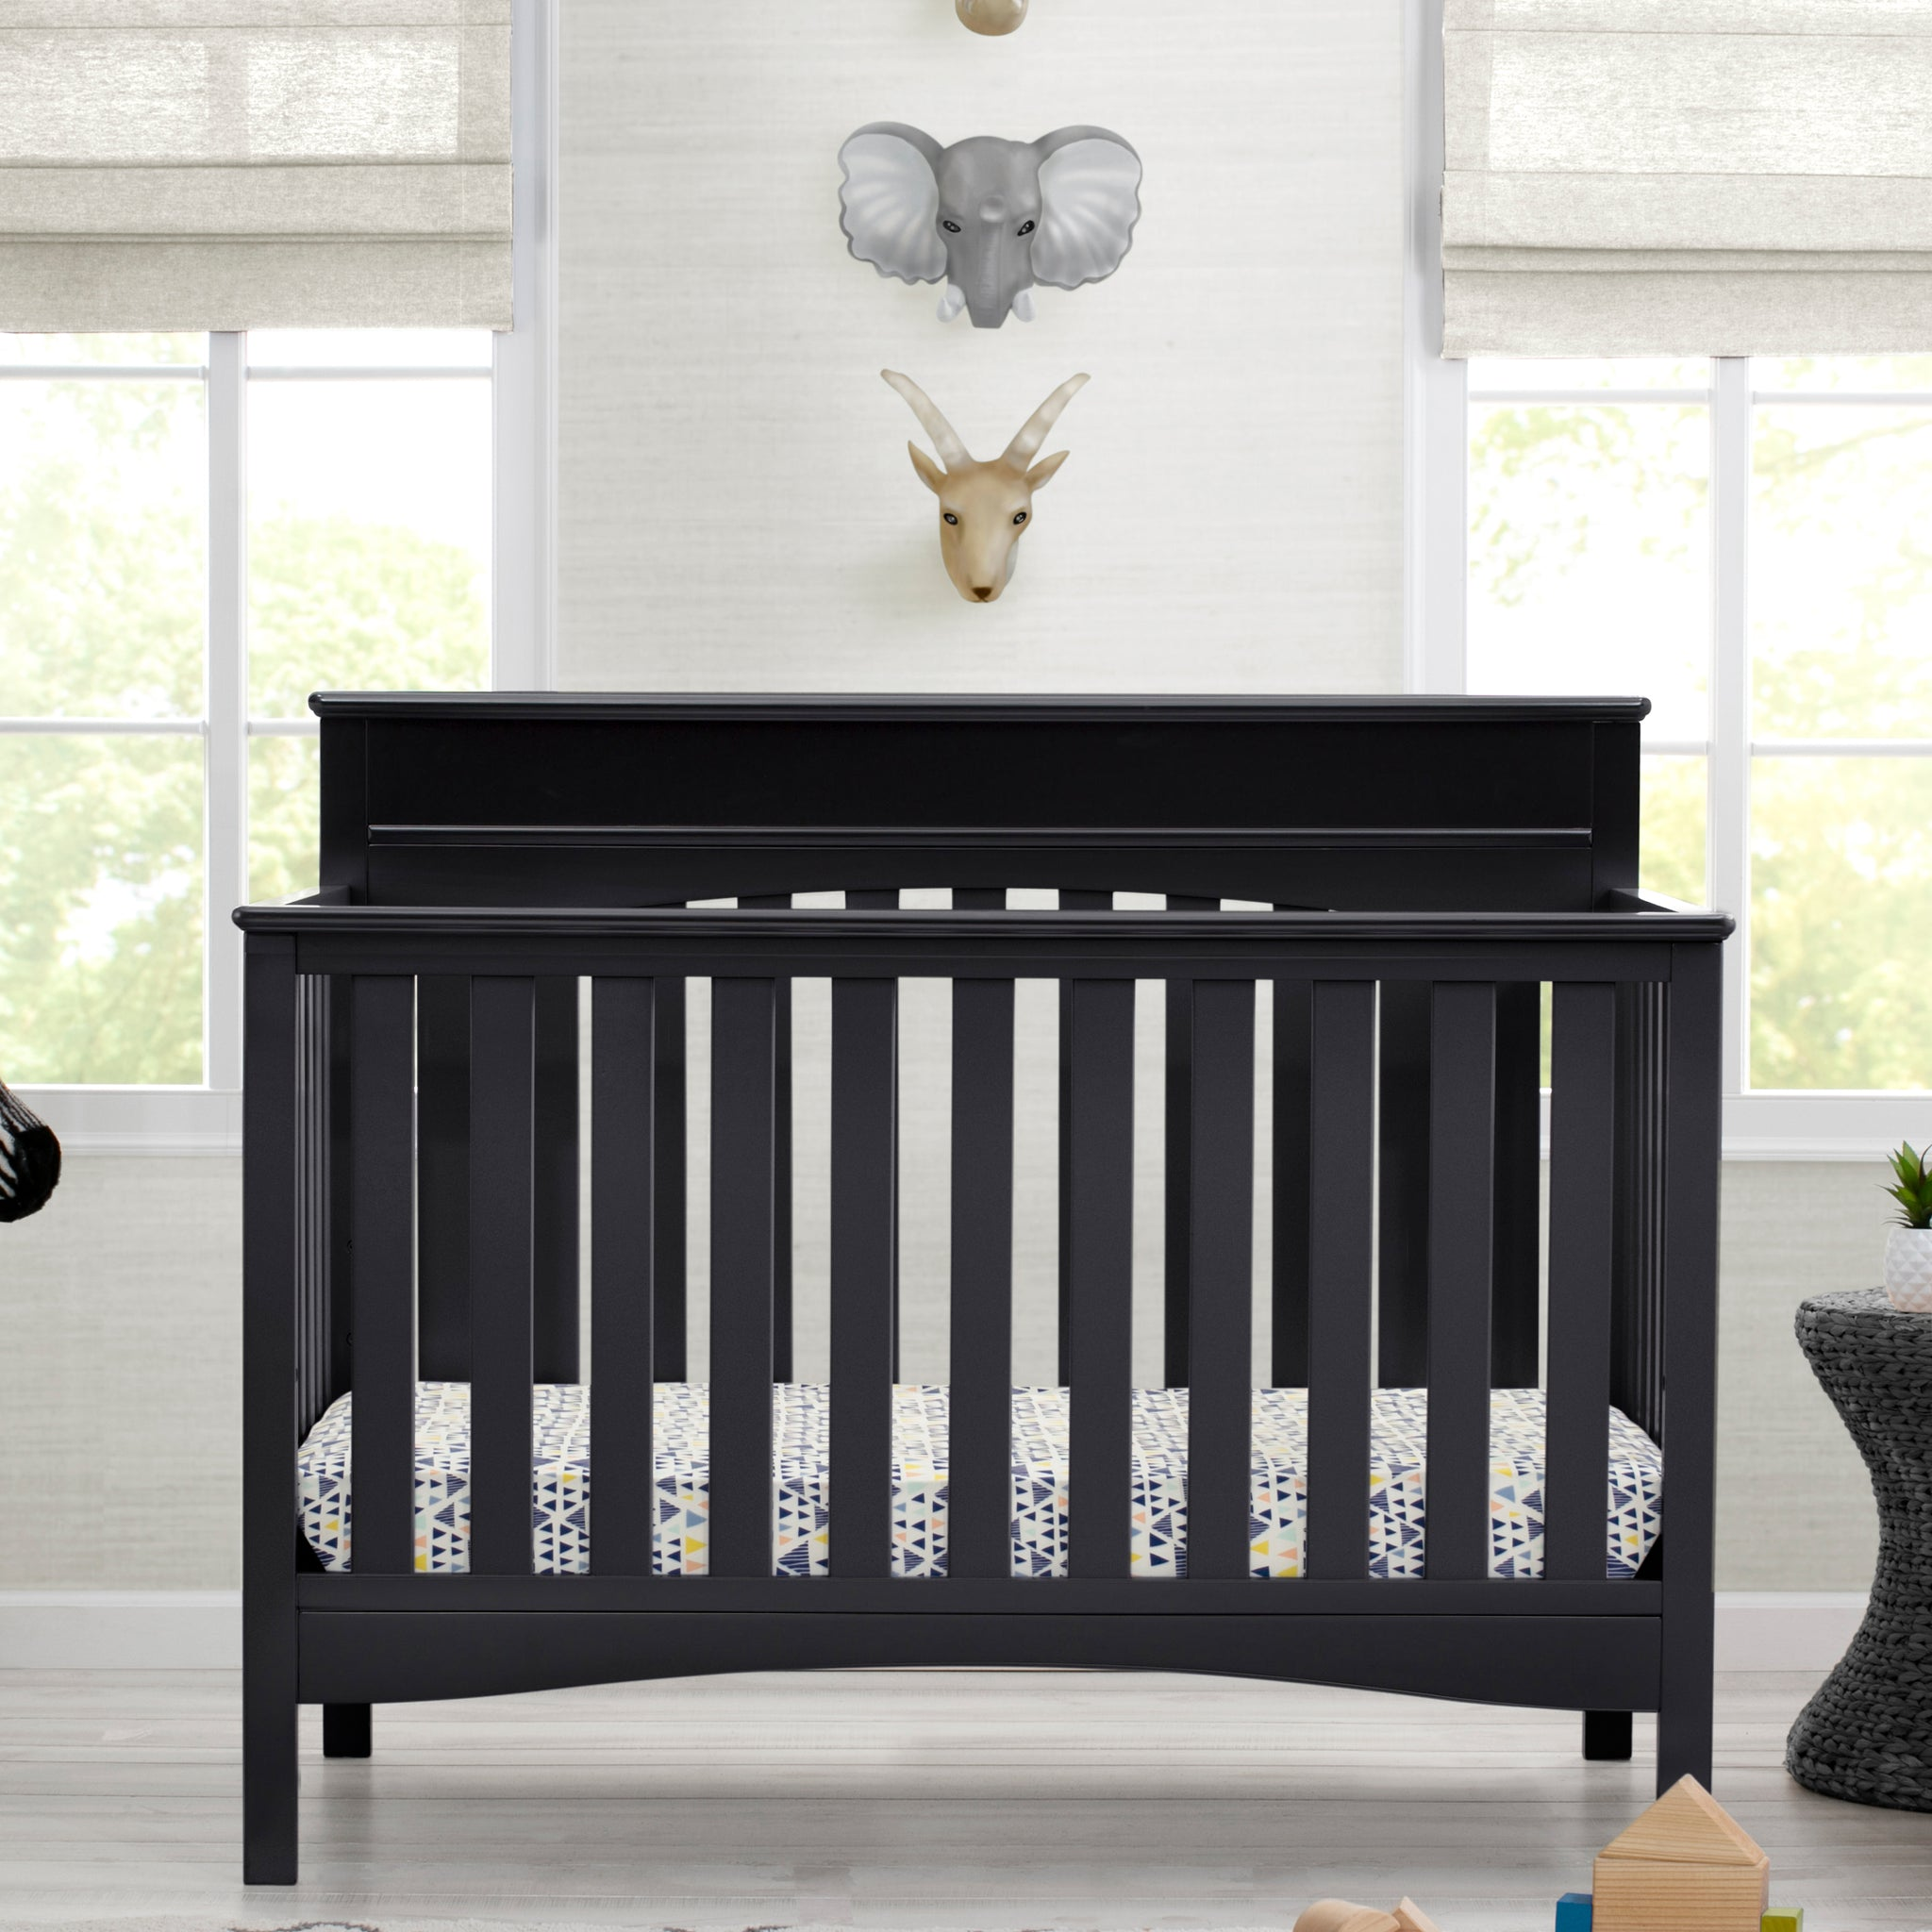 Skylar 4-in-1 Convertible Crib